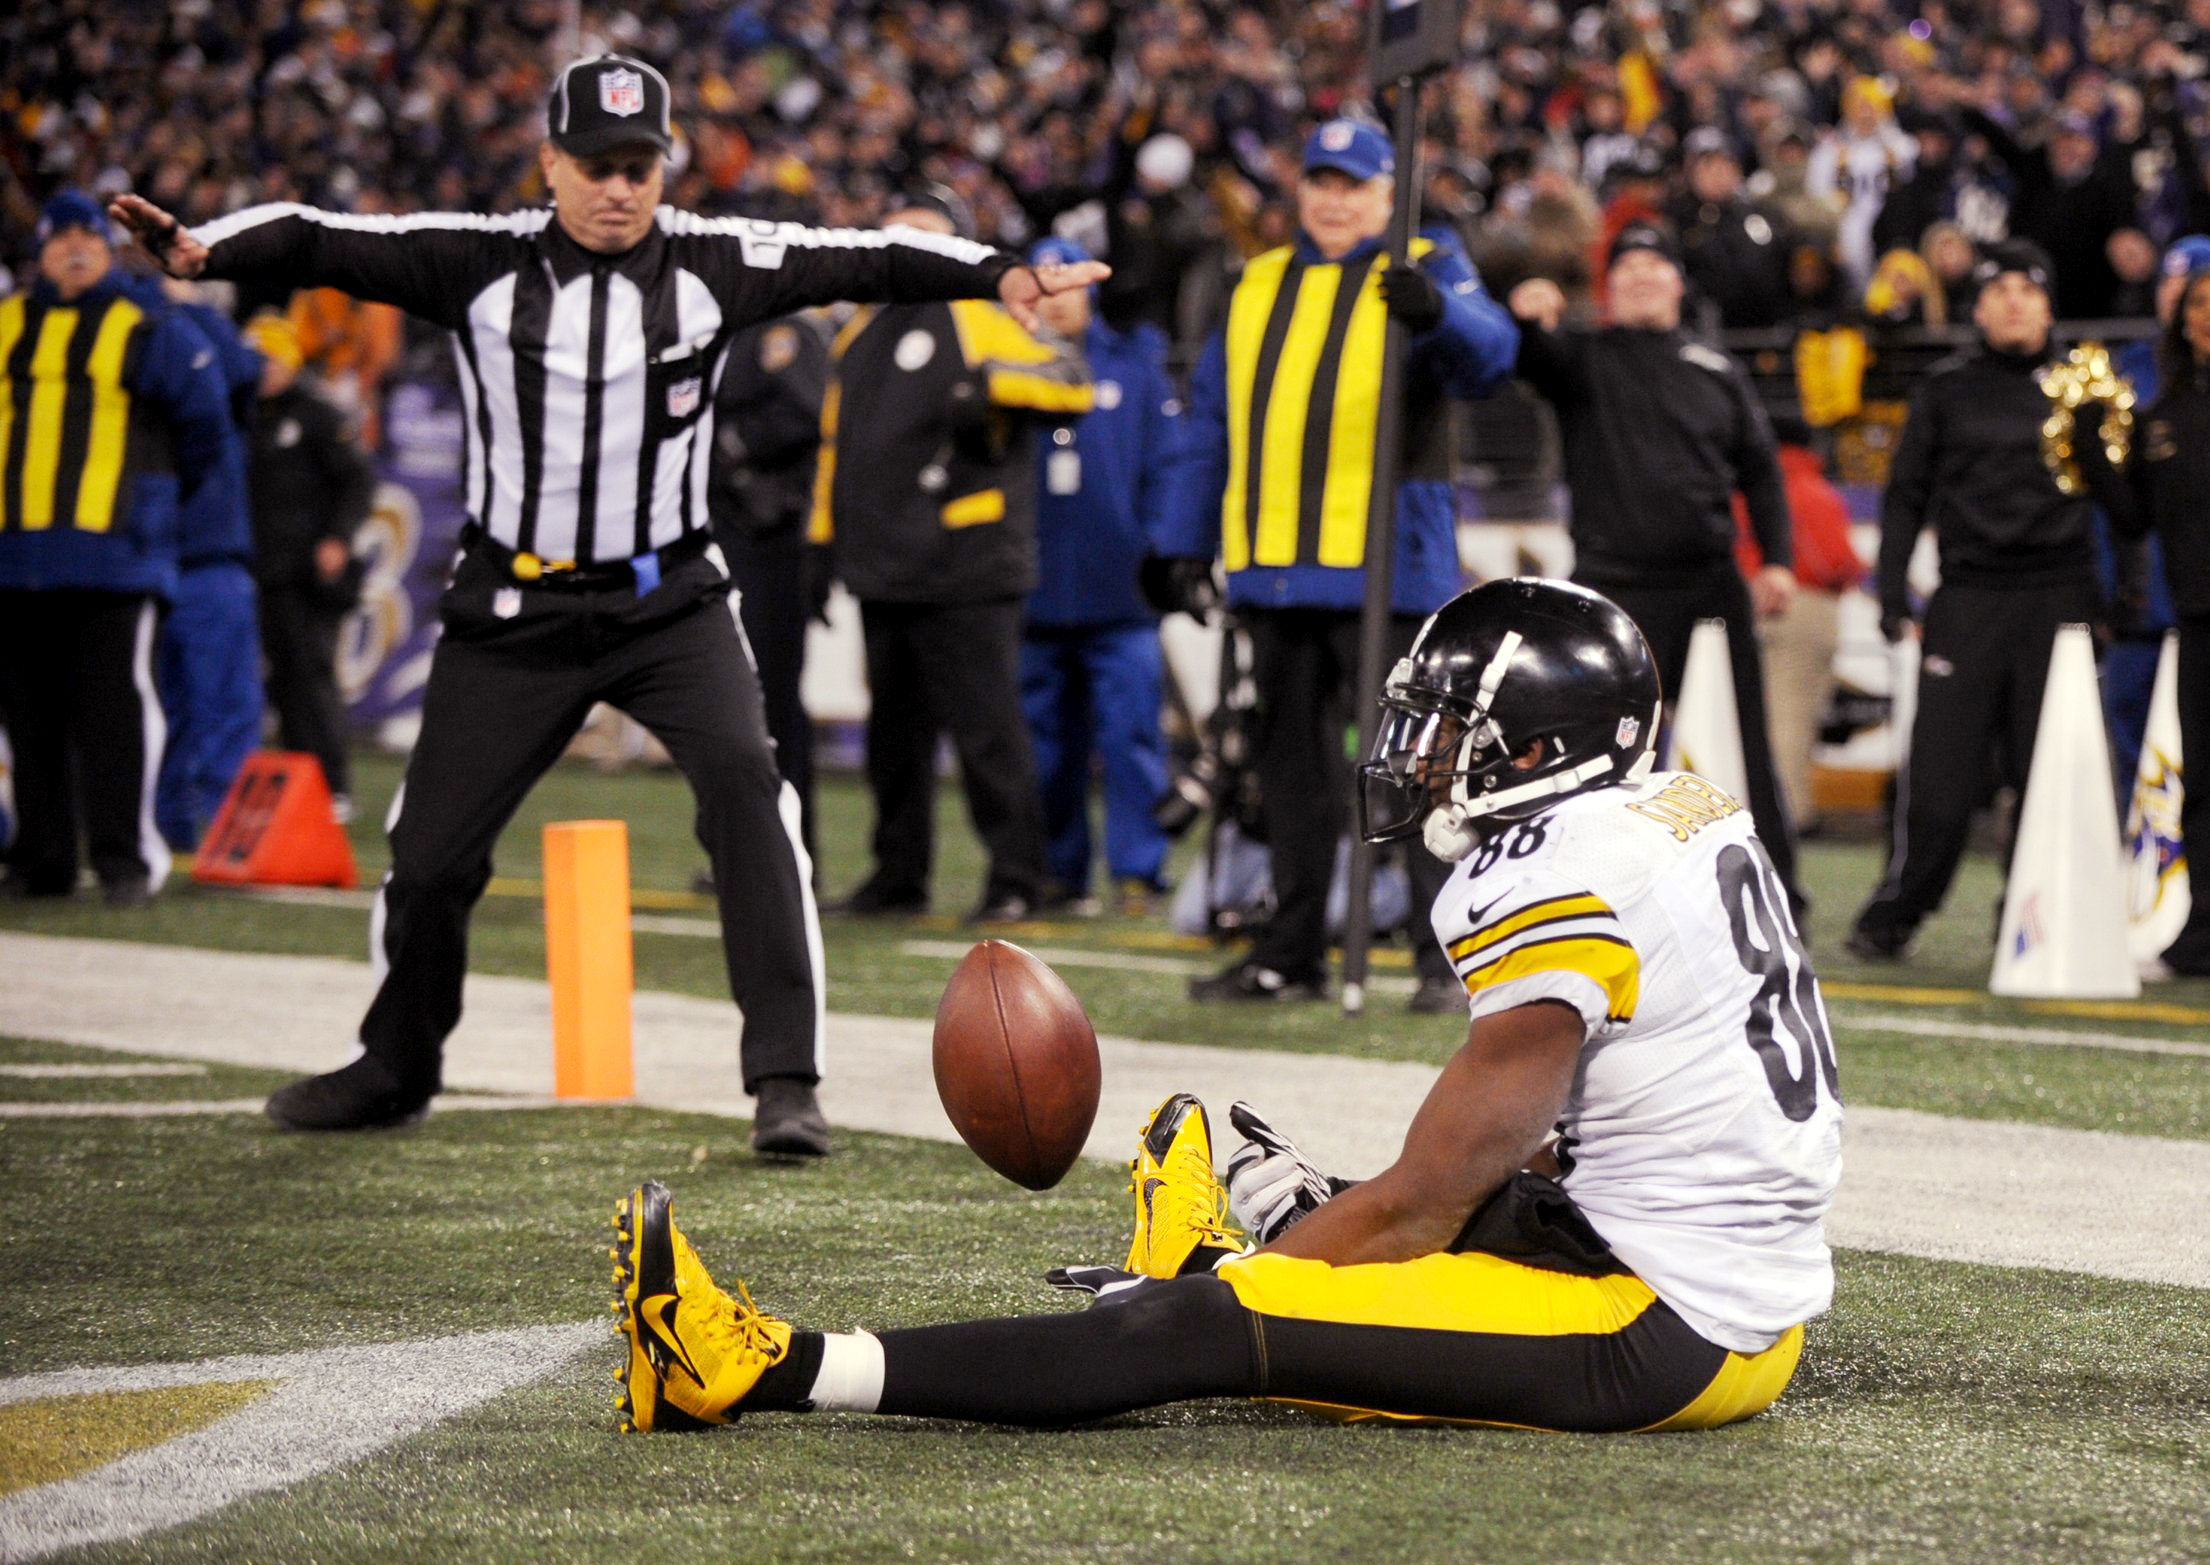 Ravens get the best of Steelers, 22-20